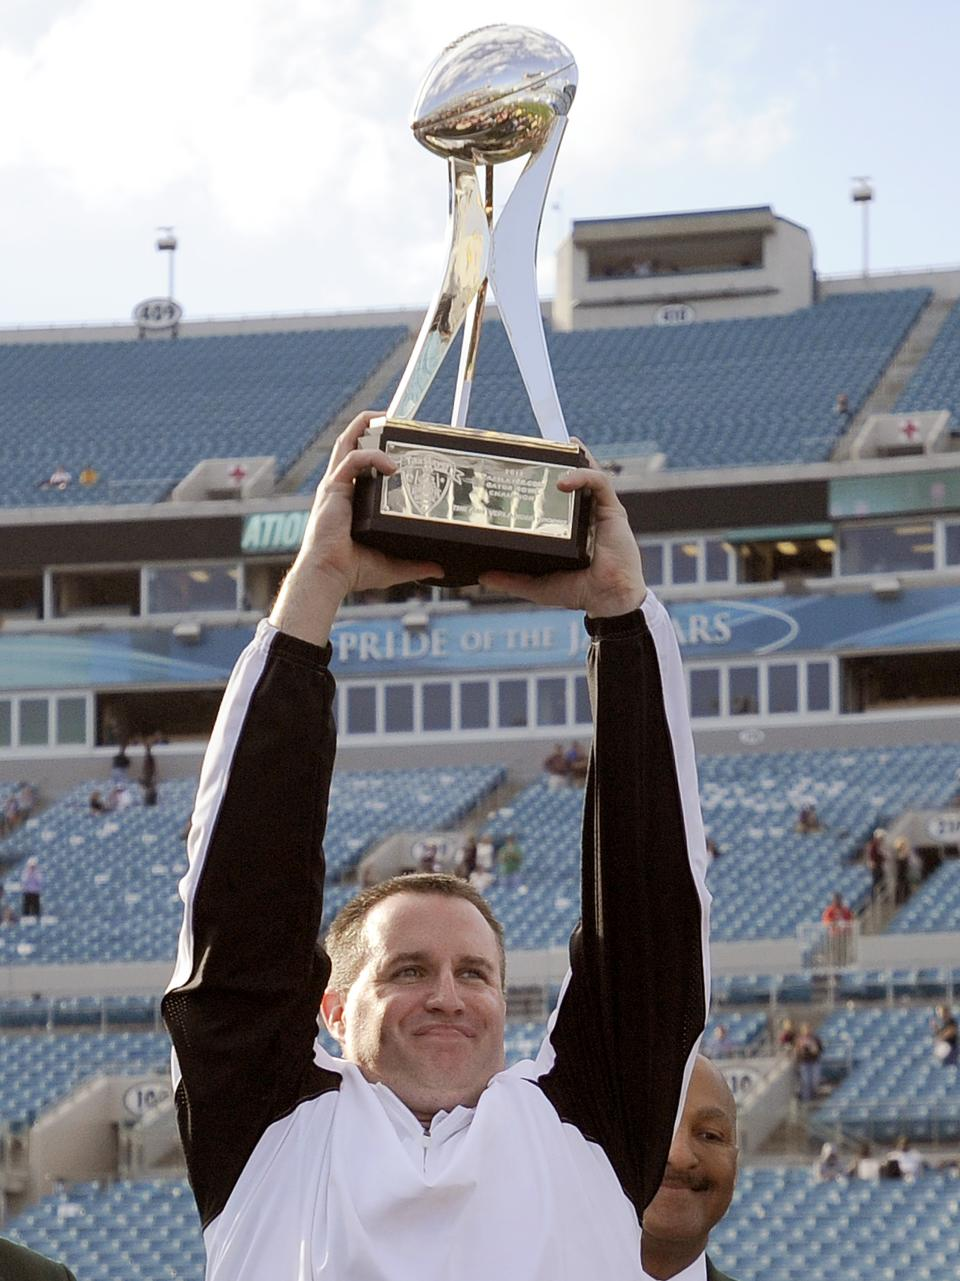 Northwestern head coach Pat Fitzgerald celebrates with the trophy after their 34-20 win over Mississippi State in the Gator Bowl NCAA college football game, Tuesday, Jan. 1, 2013 in Jacksonville, Fla.  (AP Photo/Stephen Morton)